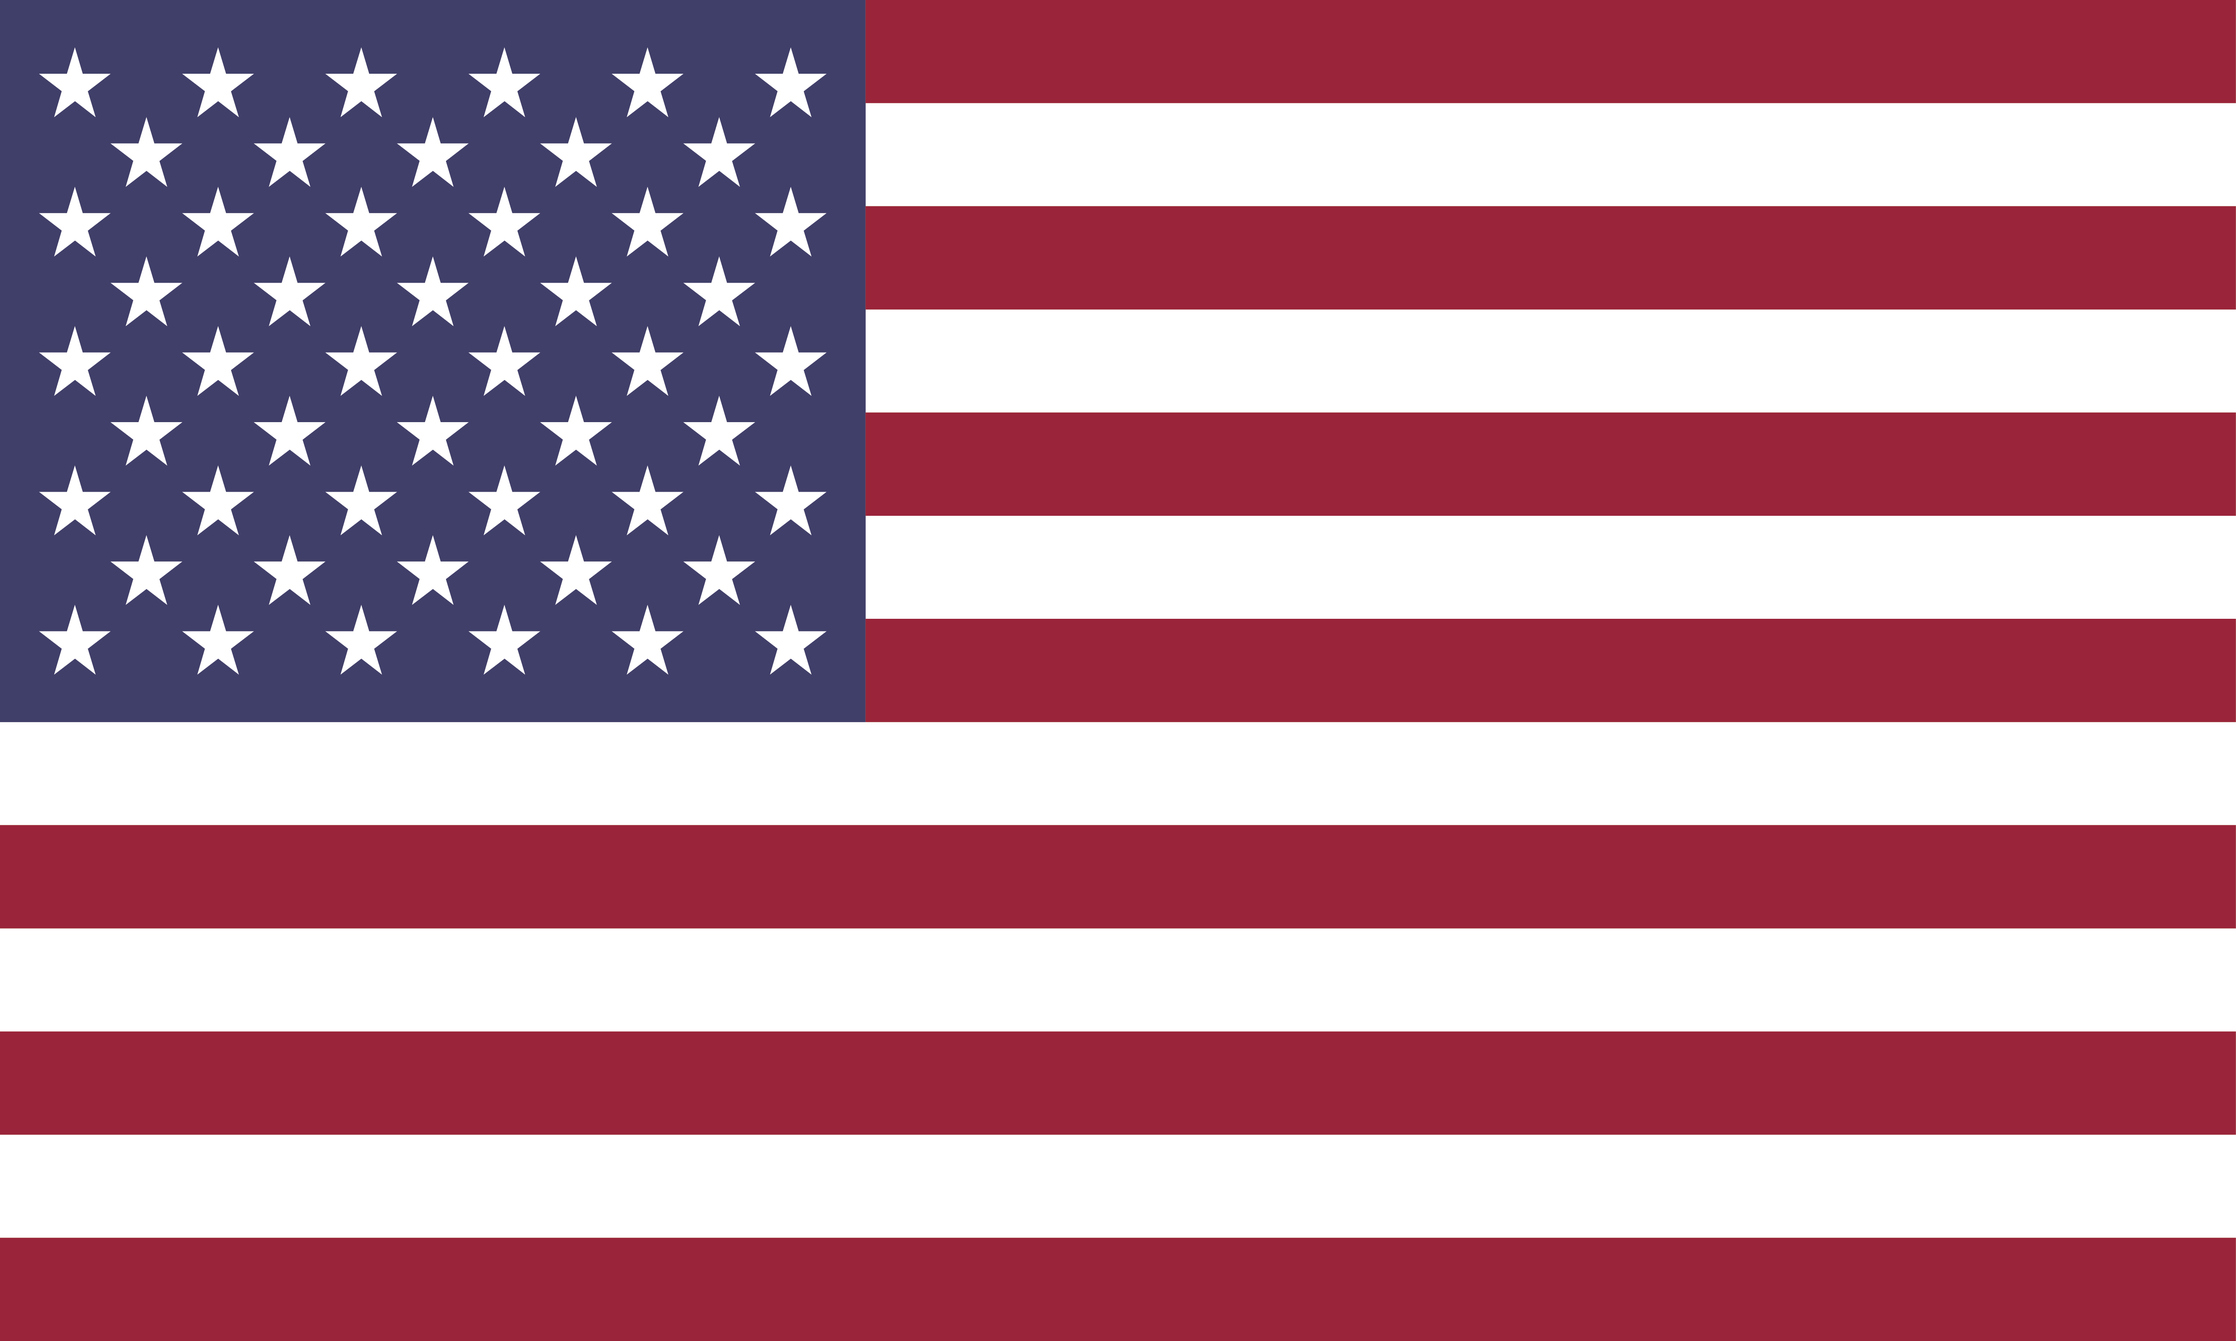 Stars and stripes, United States of America